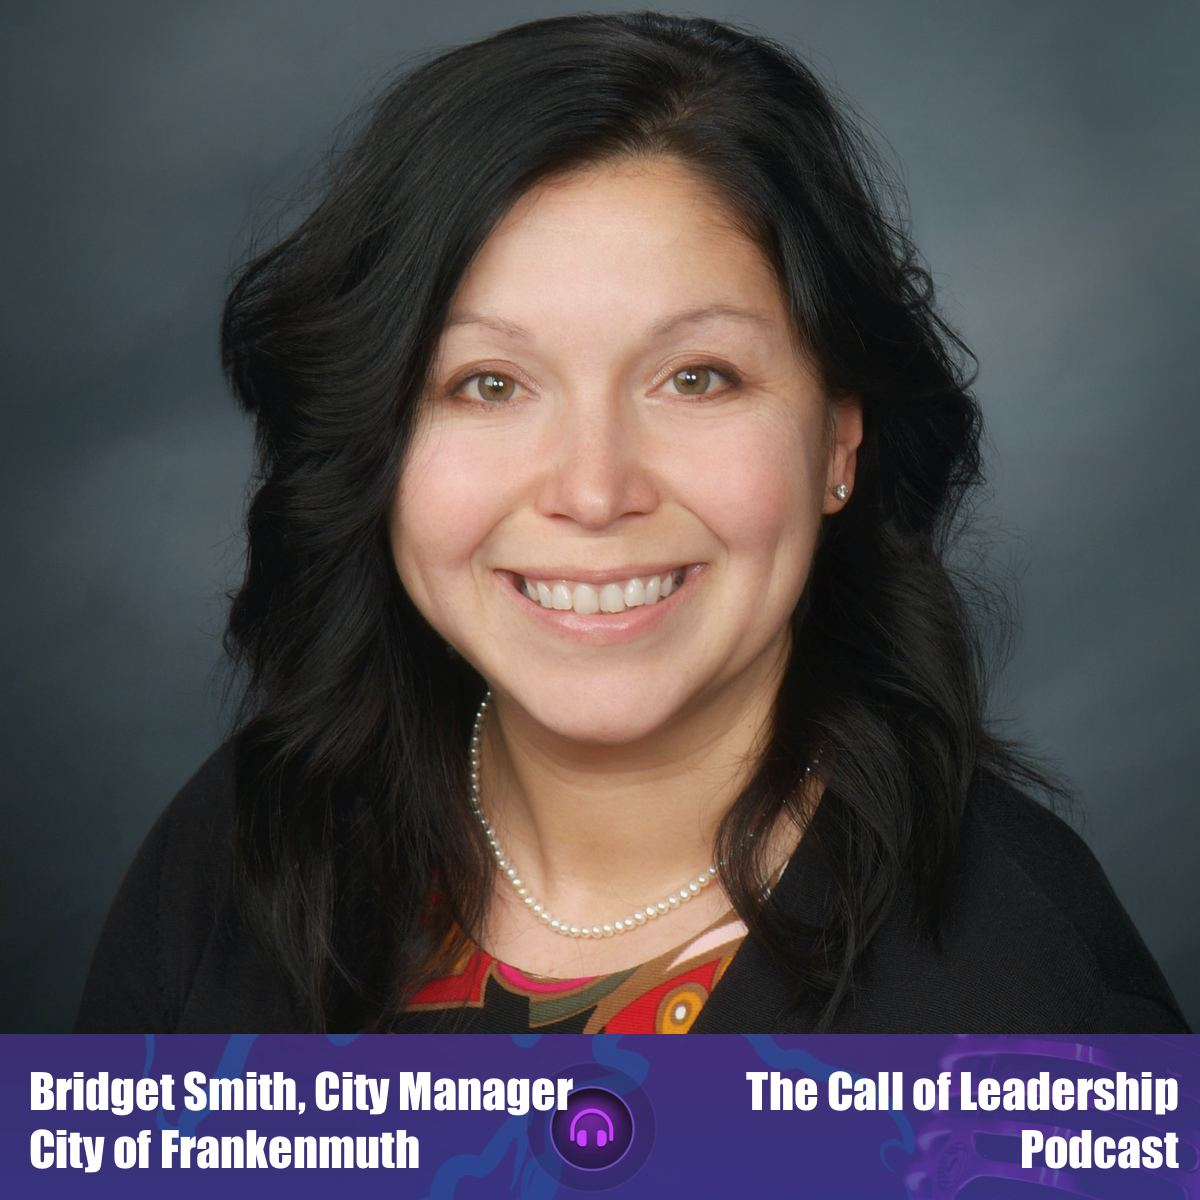 City of Frankenmuth City Planner Bridget Smith